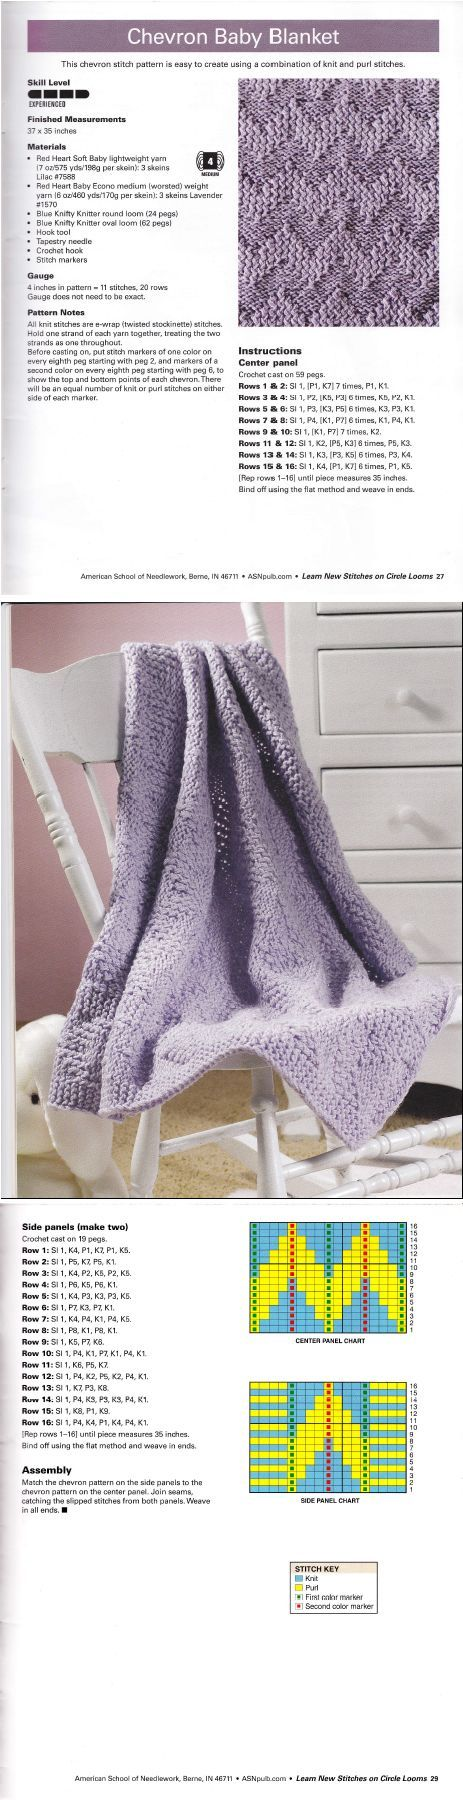 Learn New Stitches on Circle Looms by Anne Bipes: Chevron Baby Blanket: